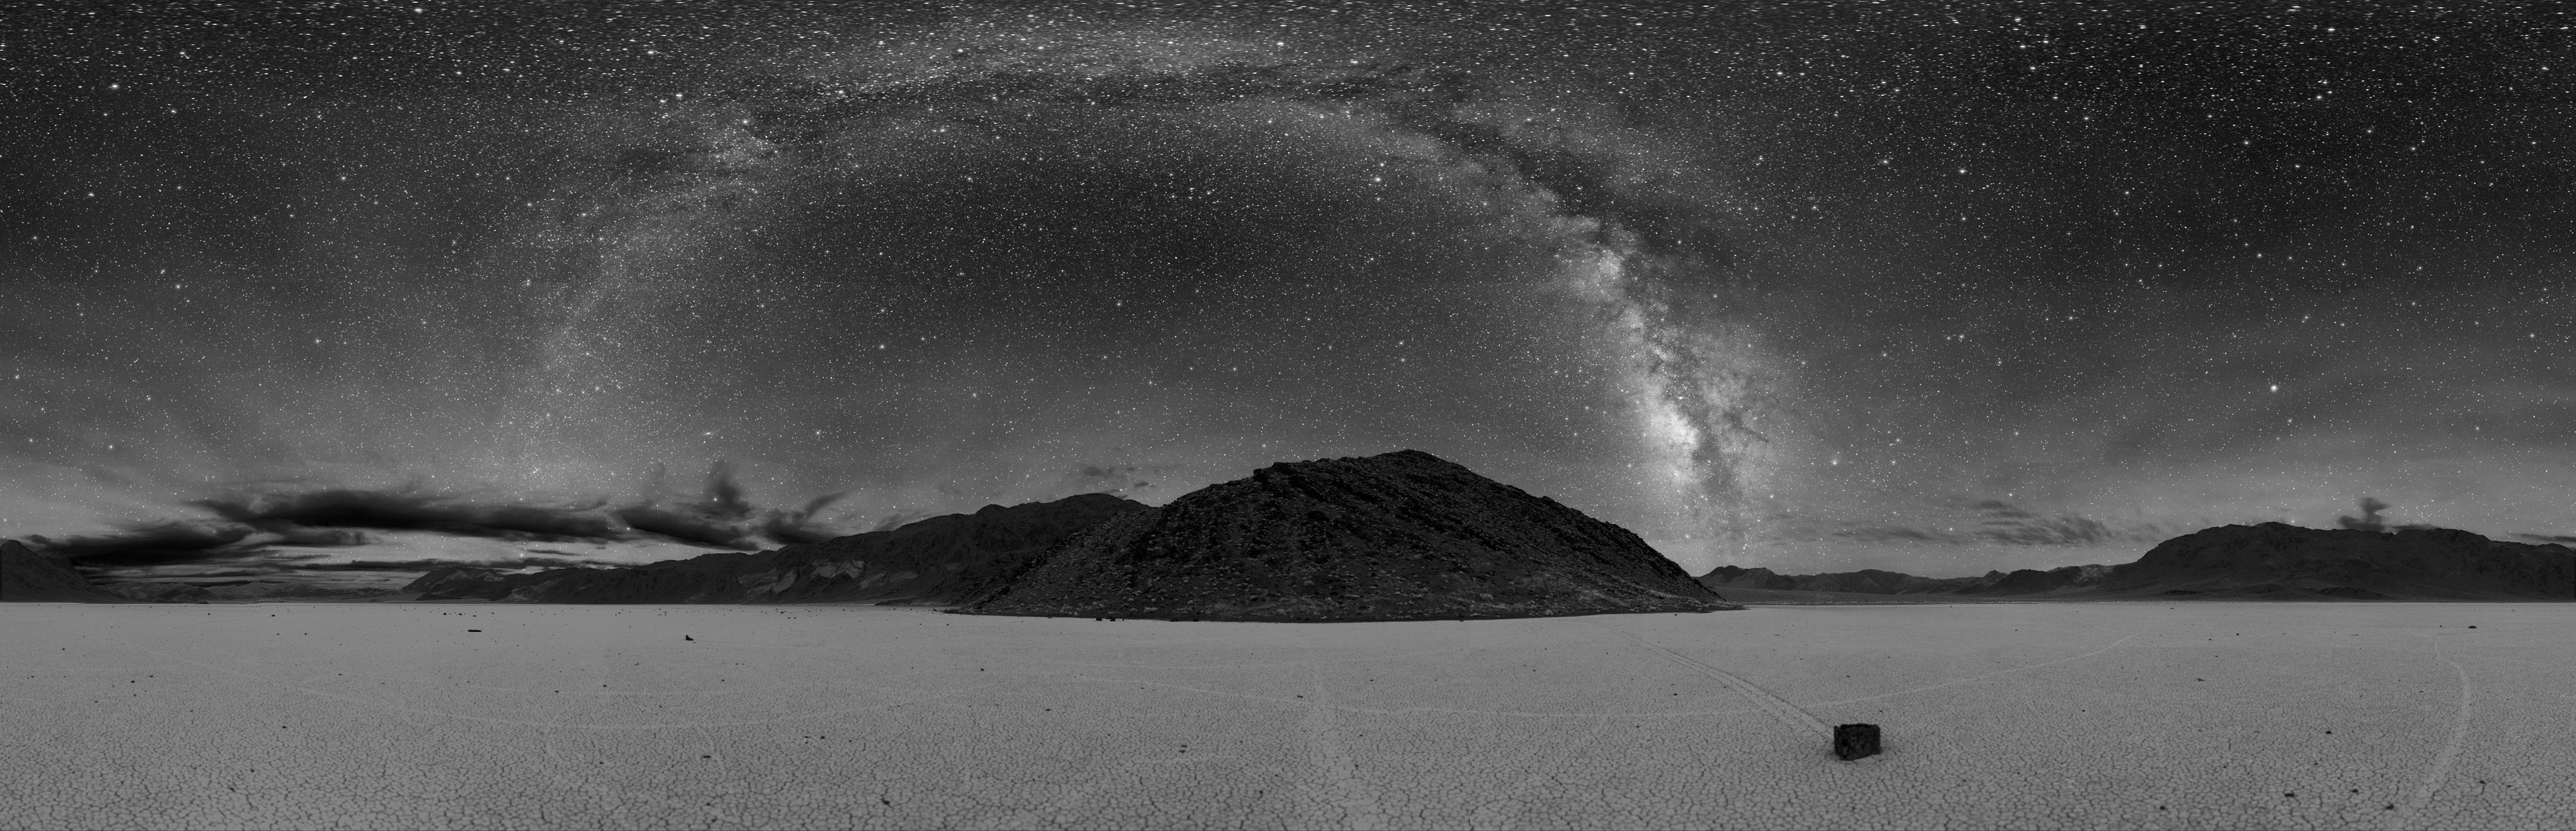 Night Sky Death Valley National Park